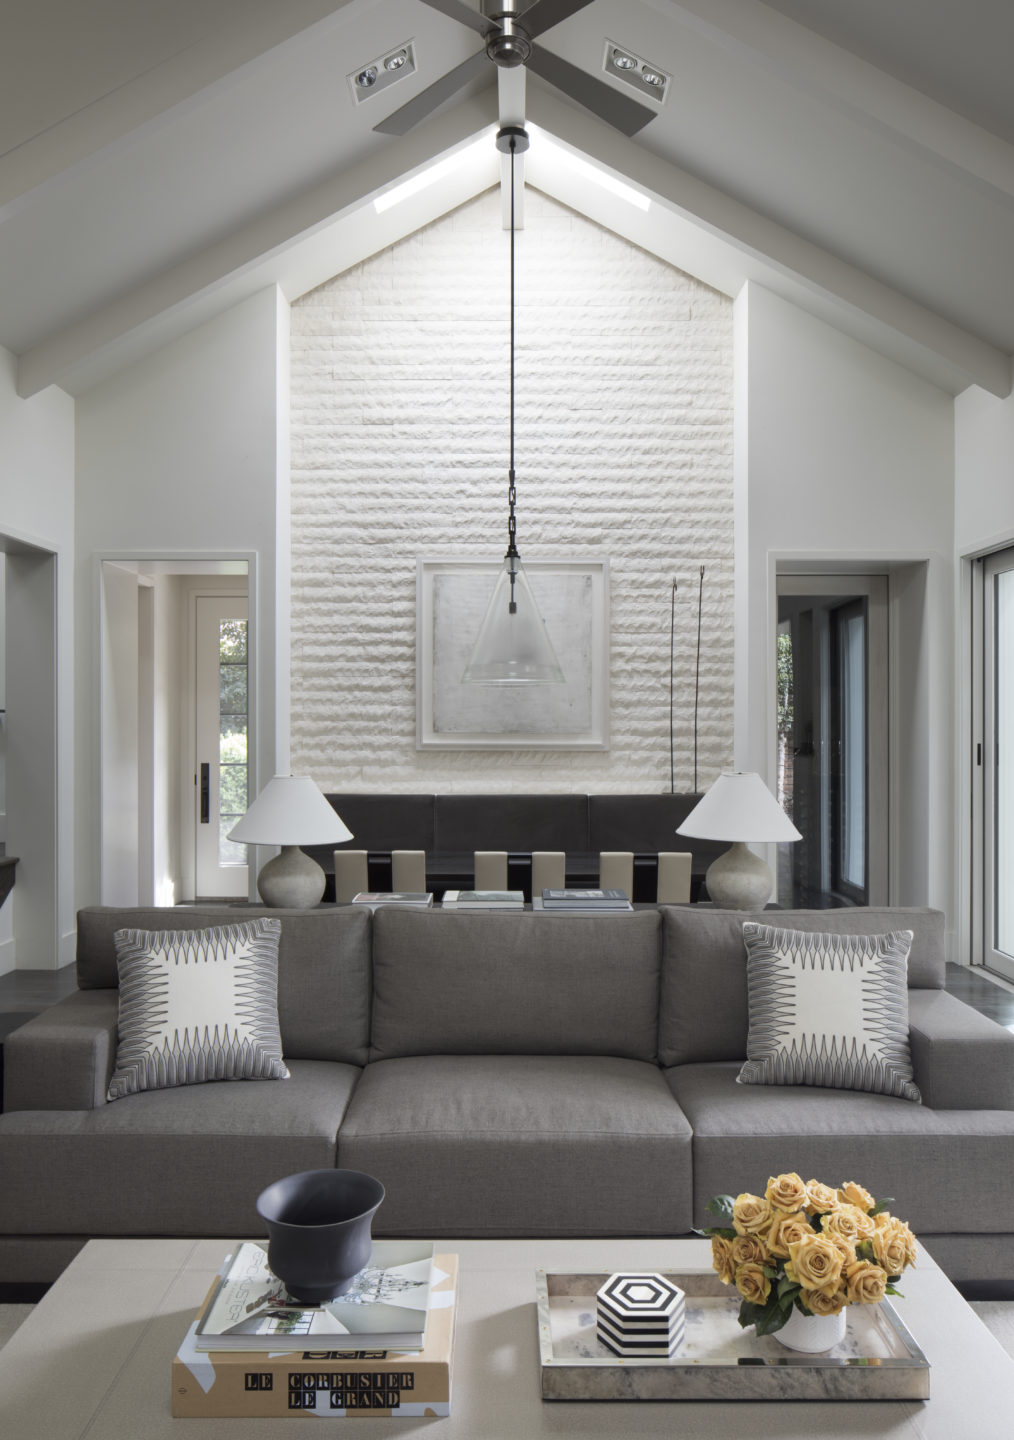 Jennifer_robins_interiors_projects_downtown_sonoma_3.5_living_room_LR